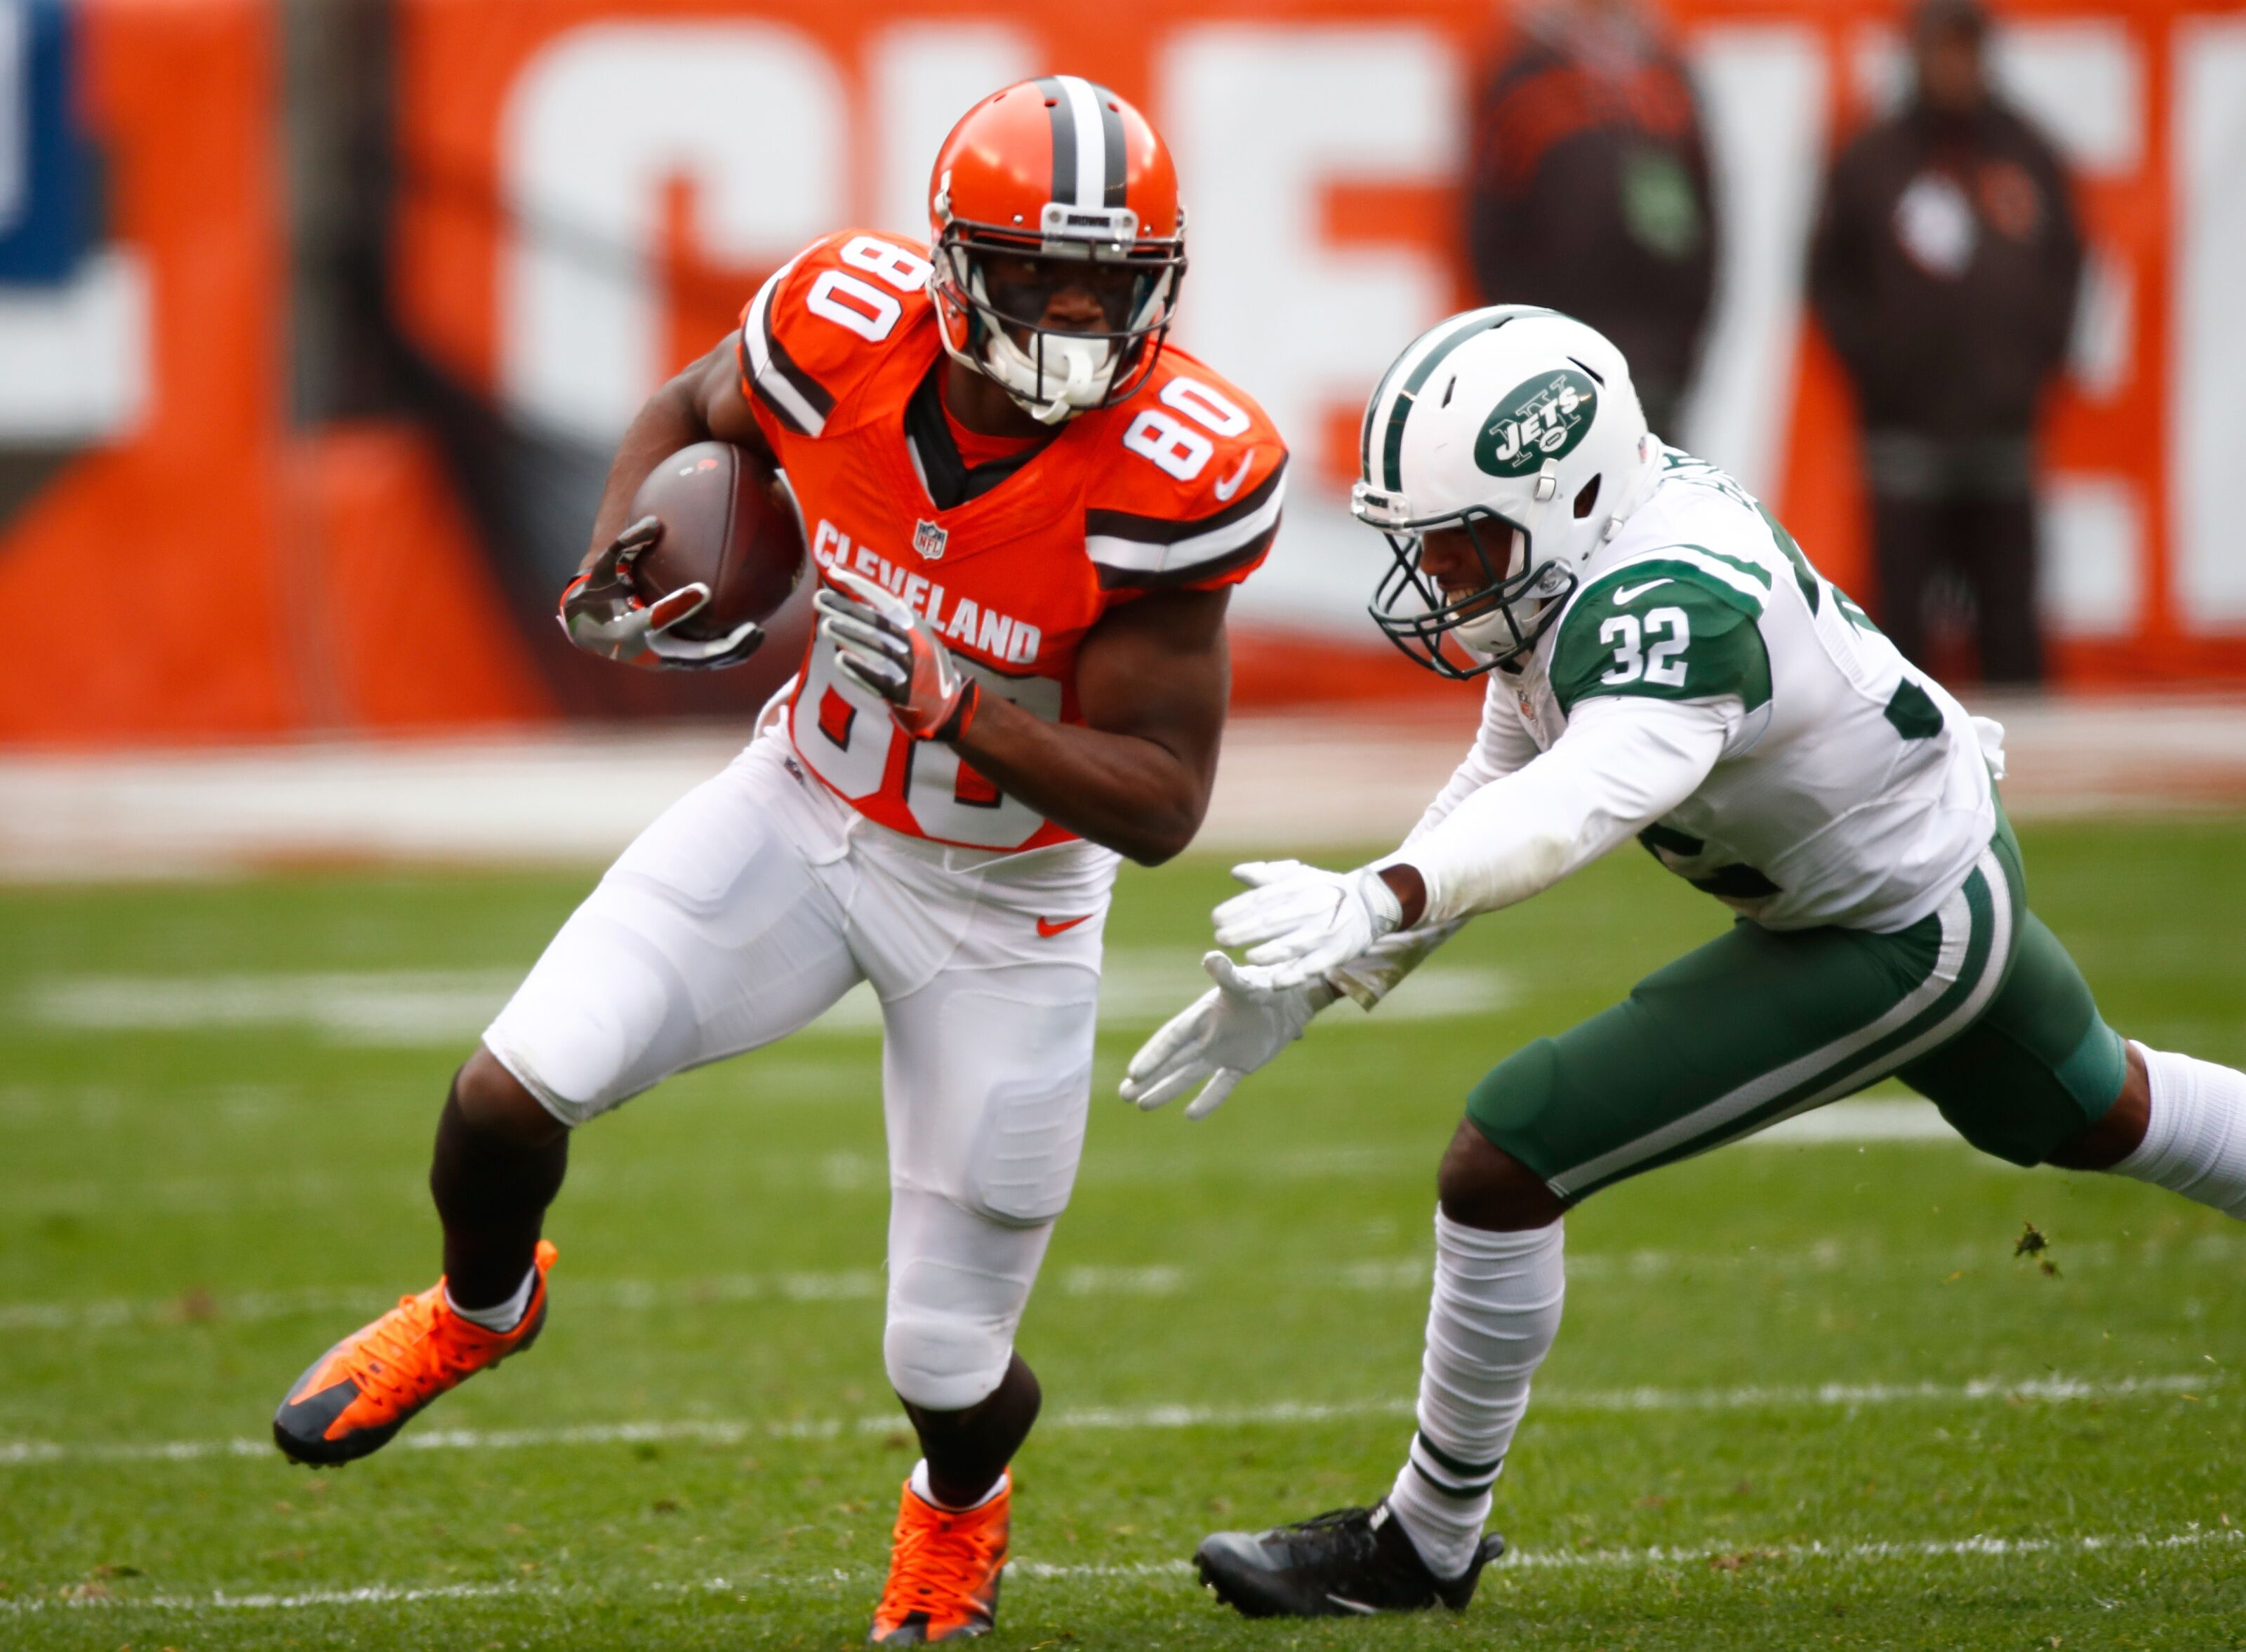 newest 0b68e 1144c Cleveland Browns: Ricardo Louis out for 2018 season